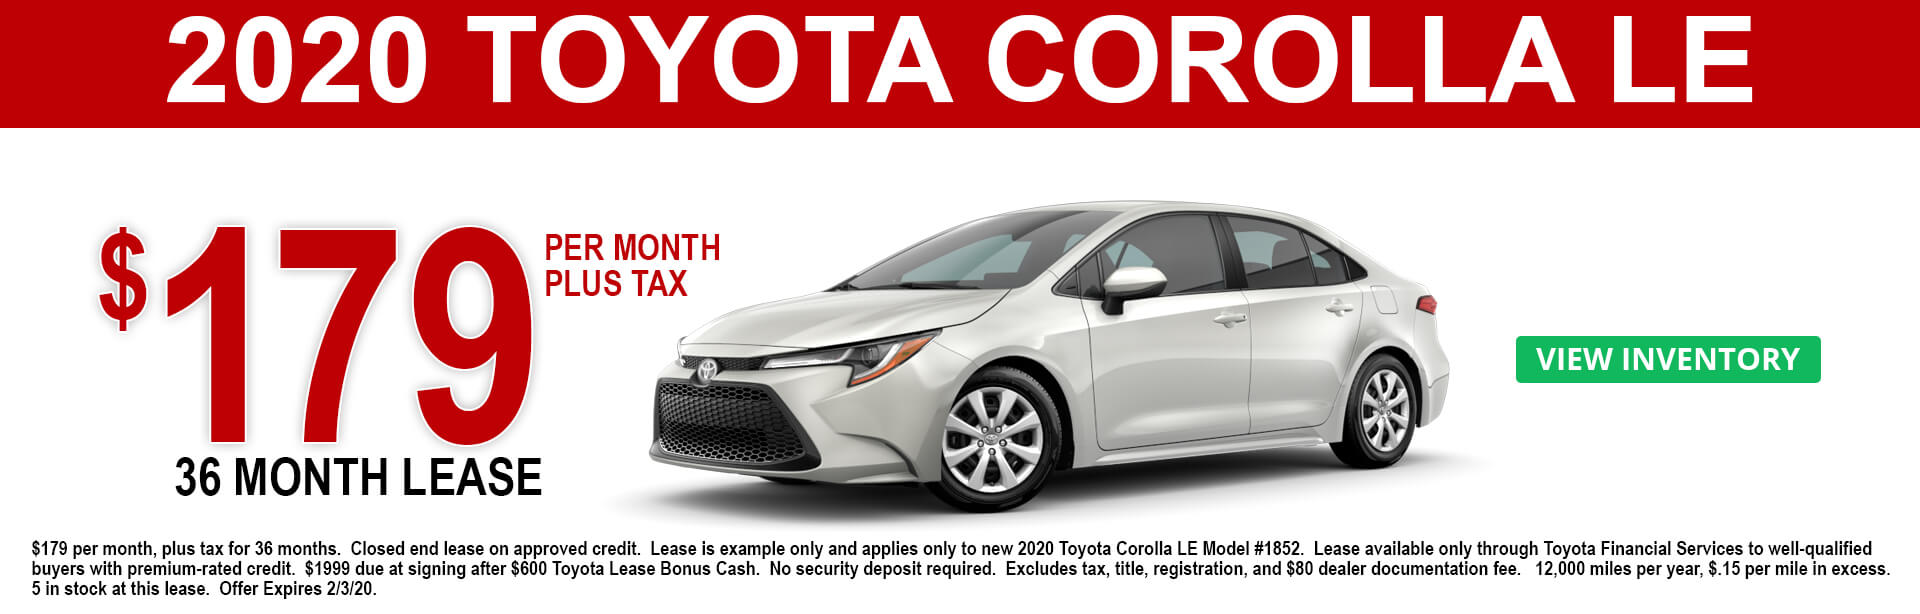 2020 Toyota Corolla LE Lease Offer $179 per month 36 months